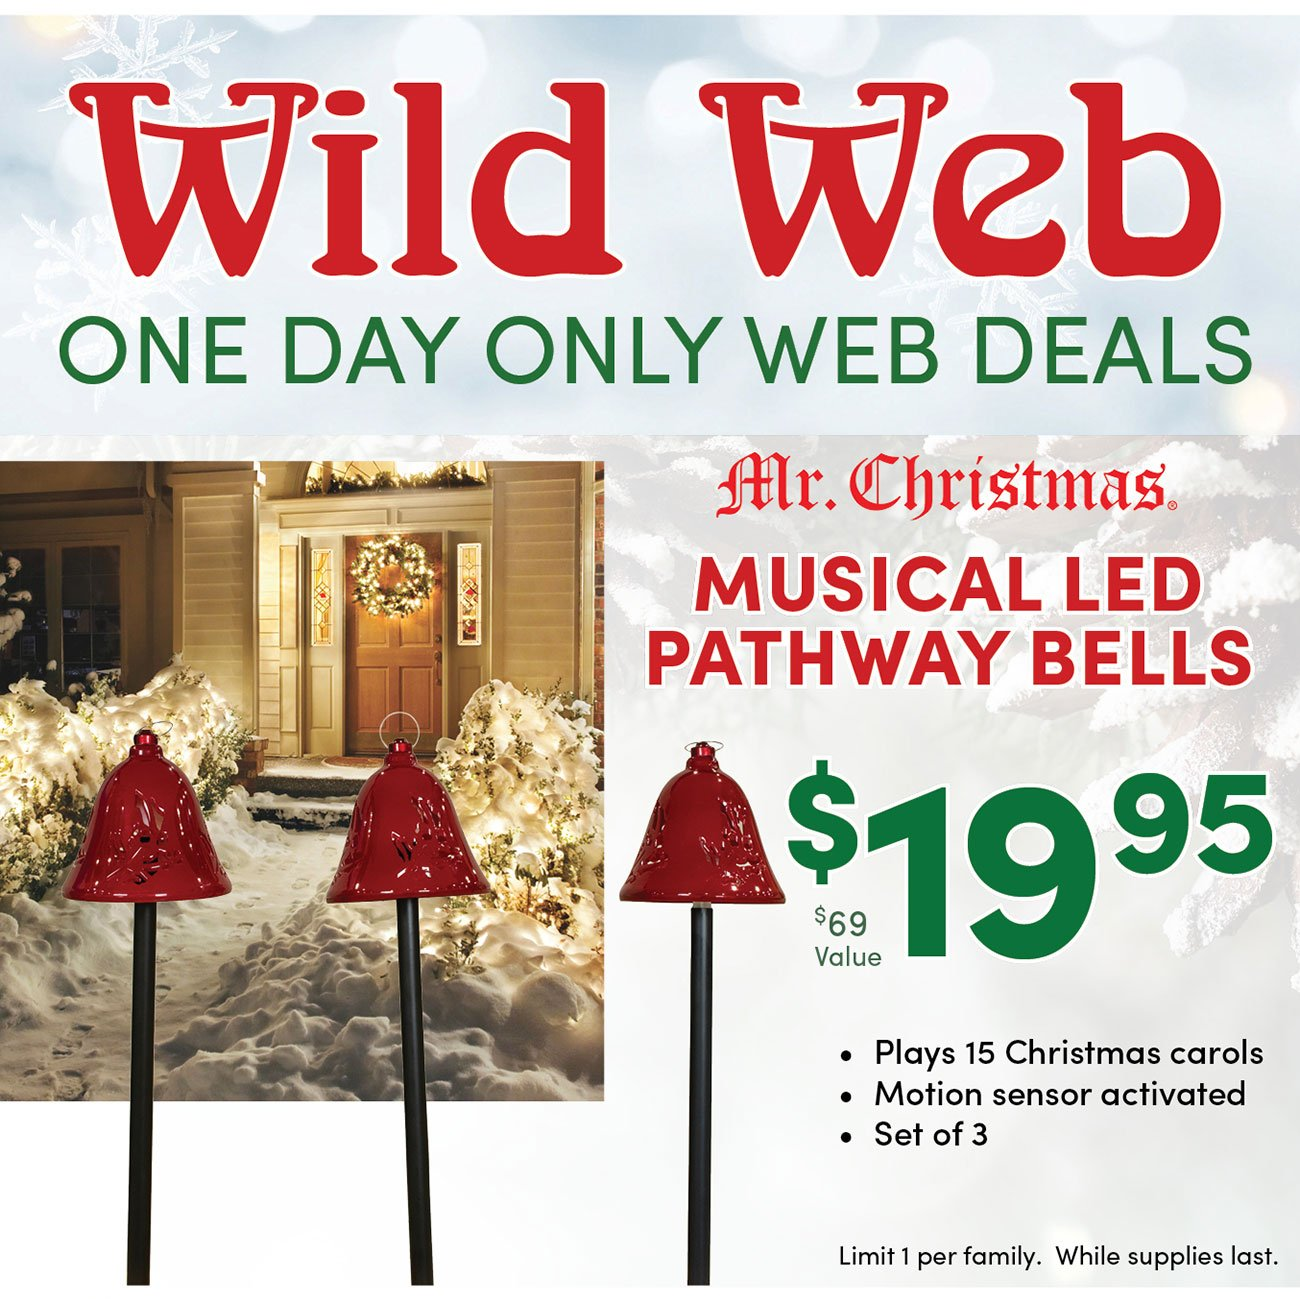 Expired Email Hi Wild Web One Day Only Savings A